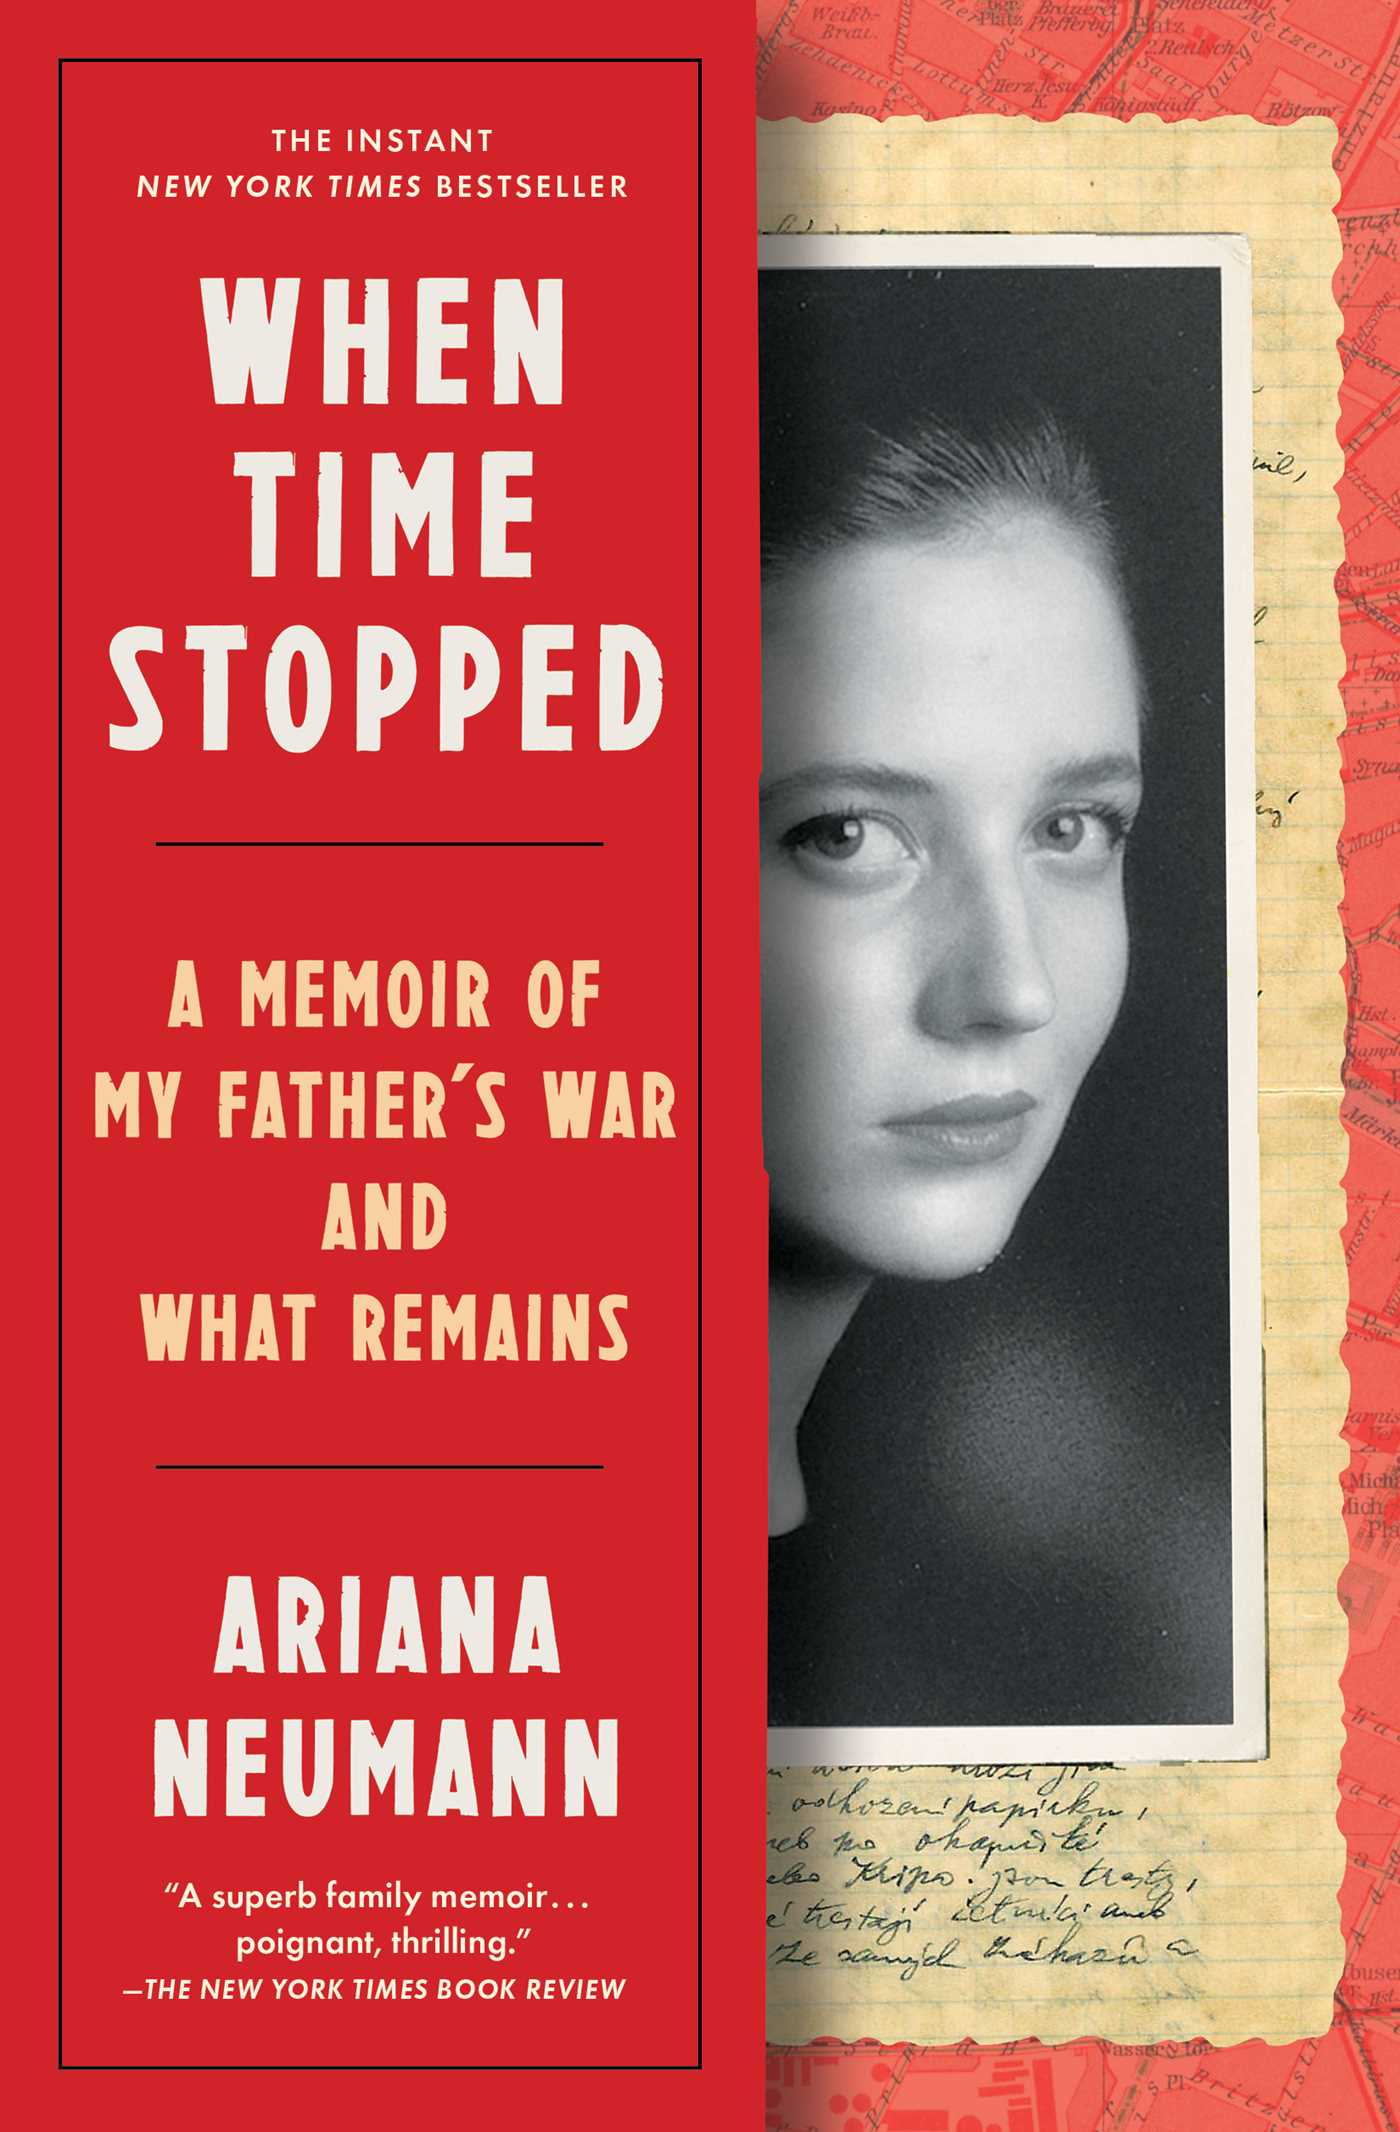 When Time Stopped A Memoir of My Father's War and What Remains